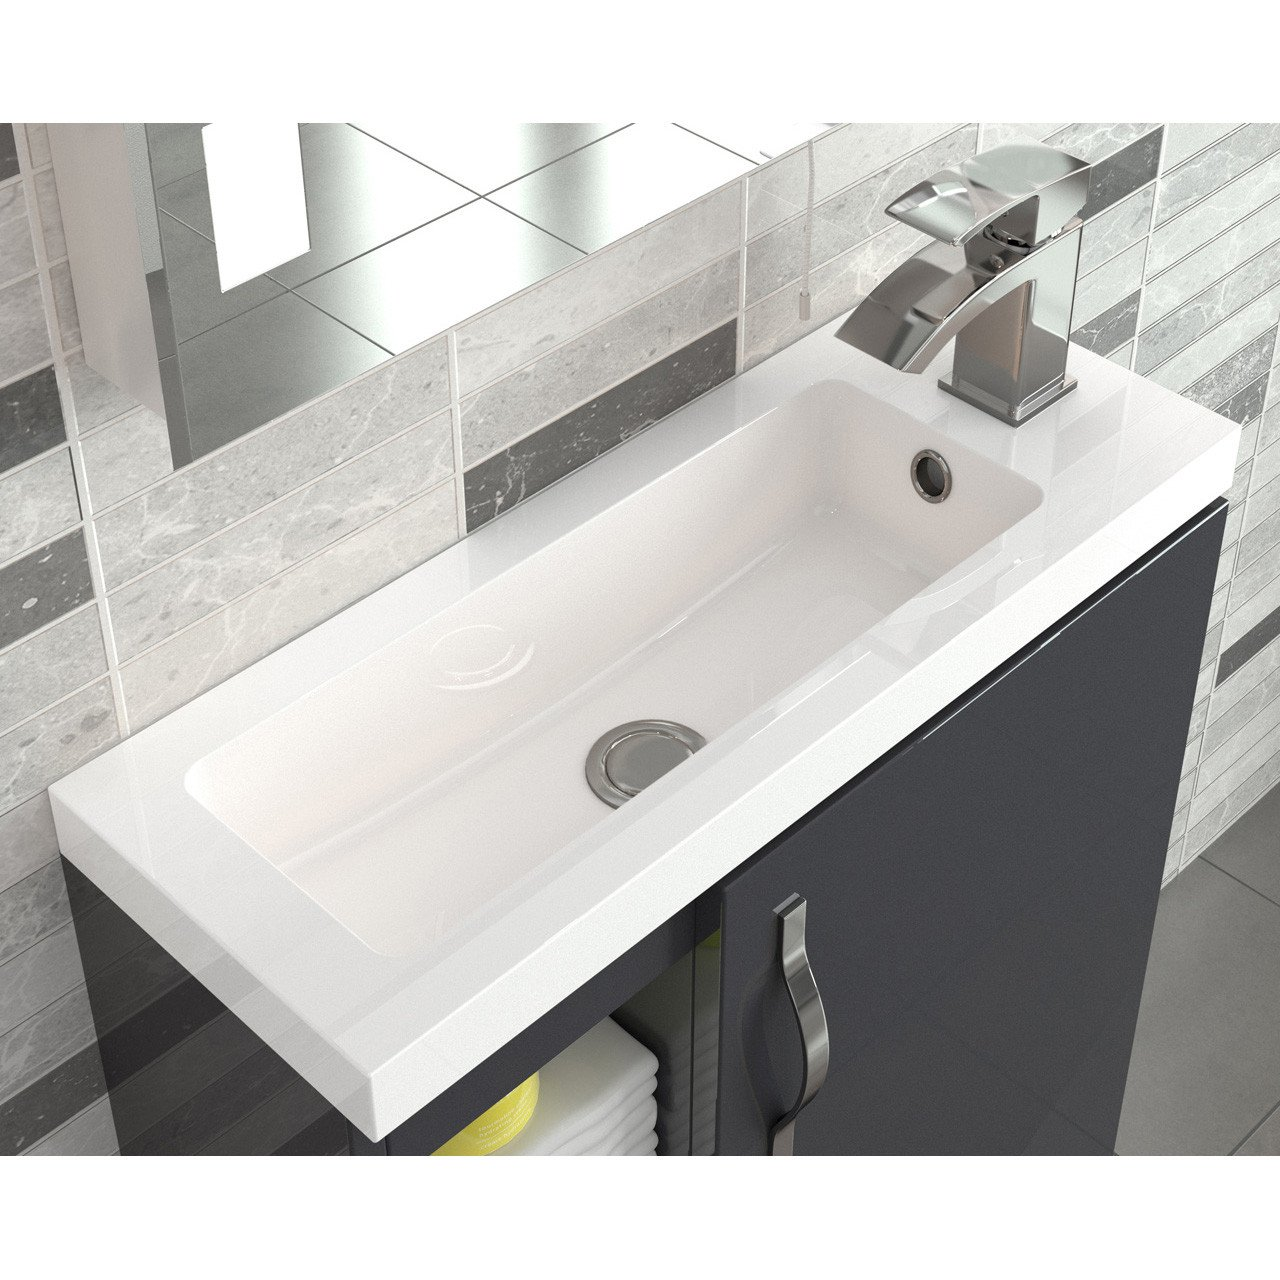 Hudson reed bathroom cabinets - Hudson Reed Apollo Compact Cashmere Floor Standing 600mm Cabinet Basin Fma776c Pmb303